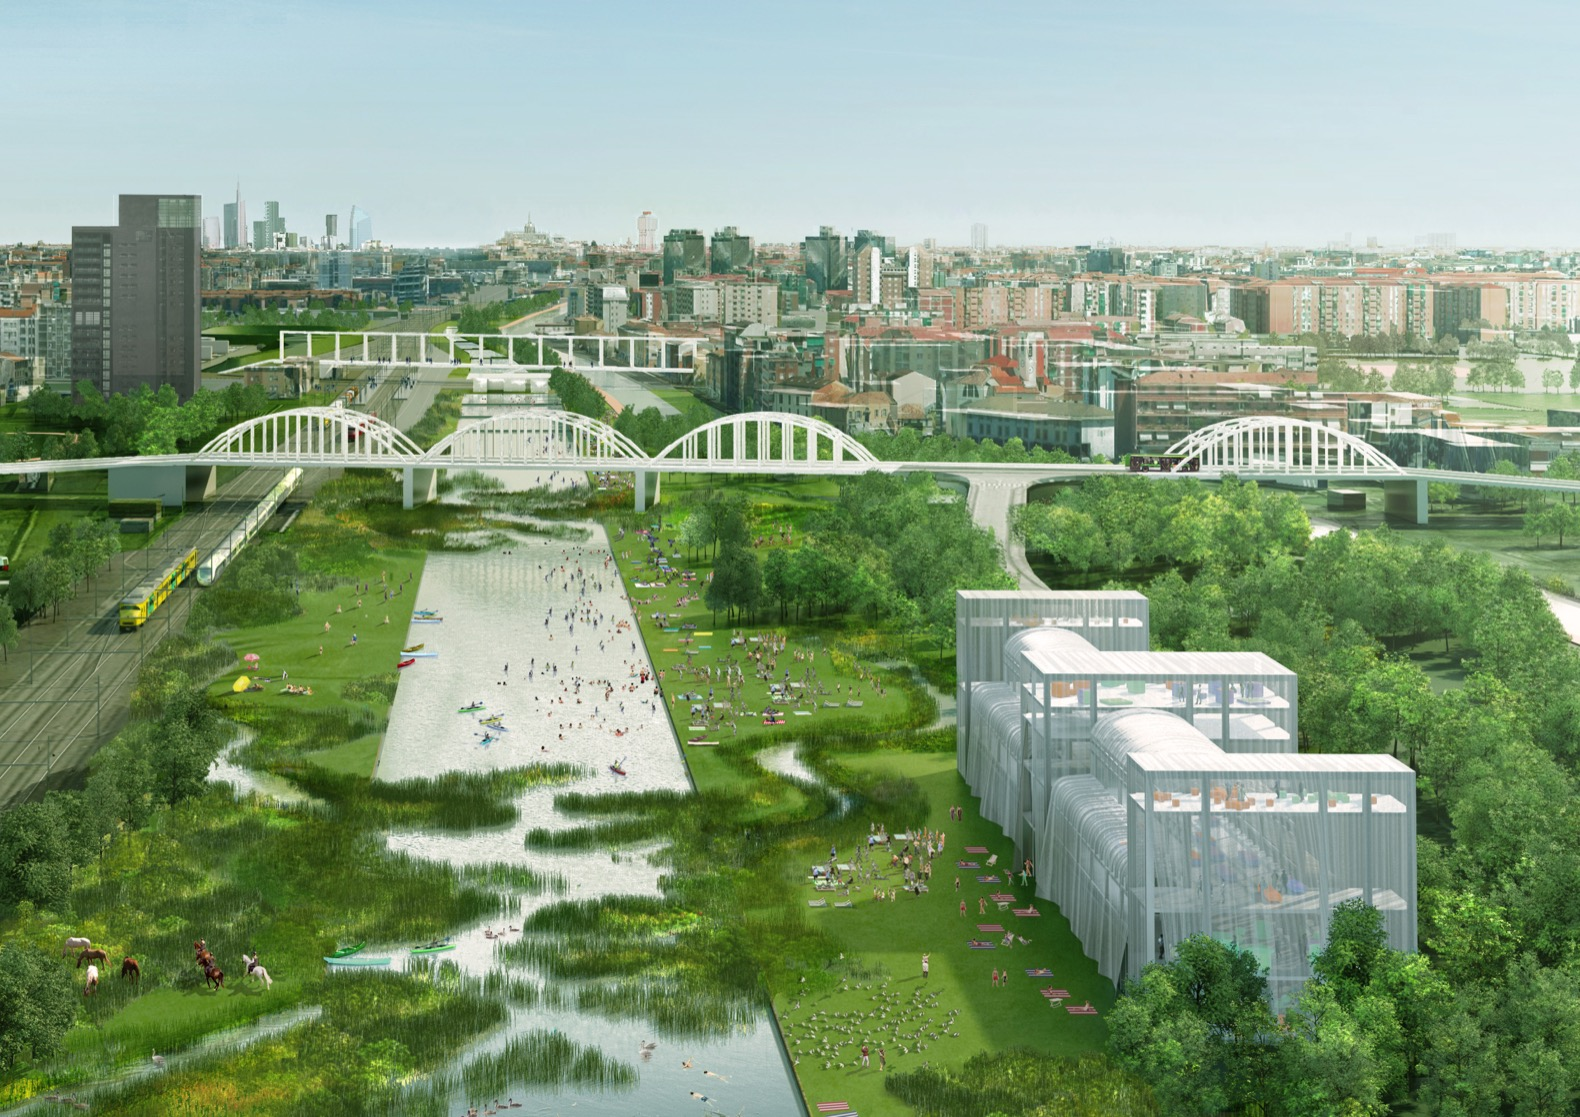 Architects to transform two old railway yards into eco parks in Milan